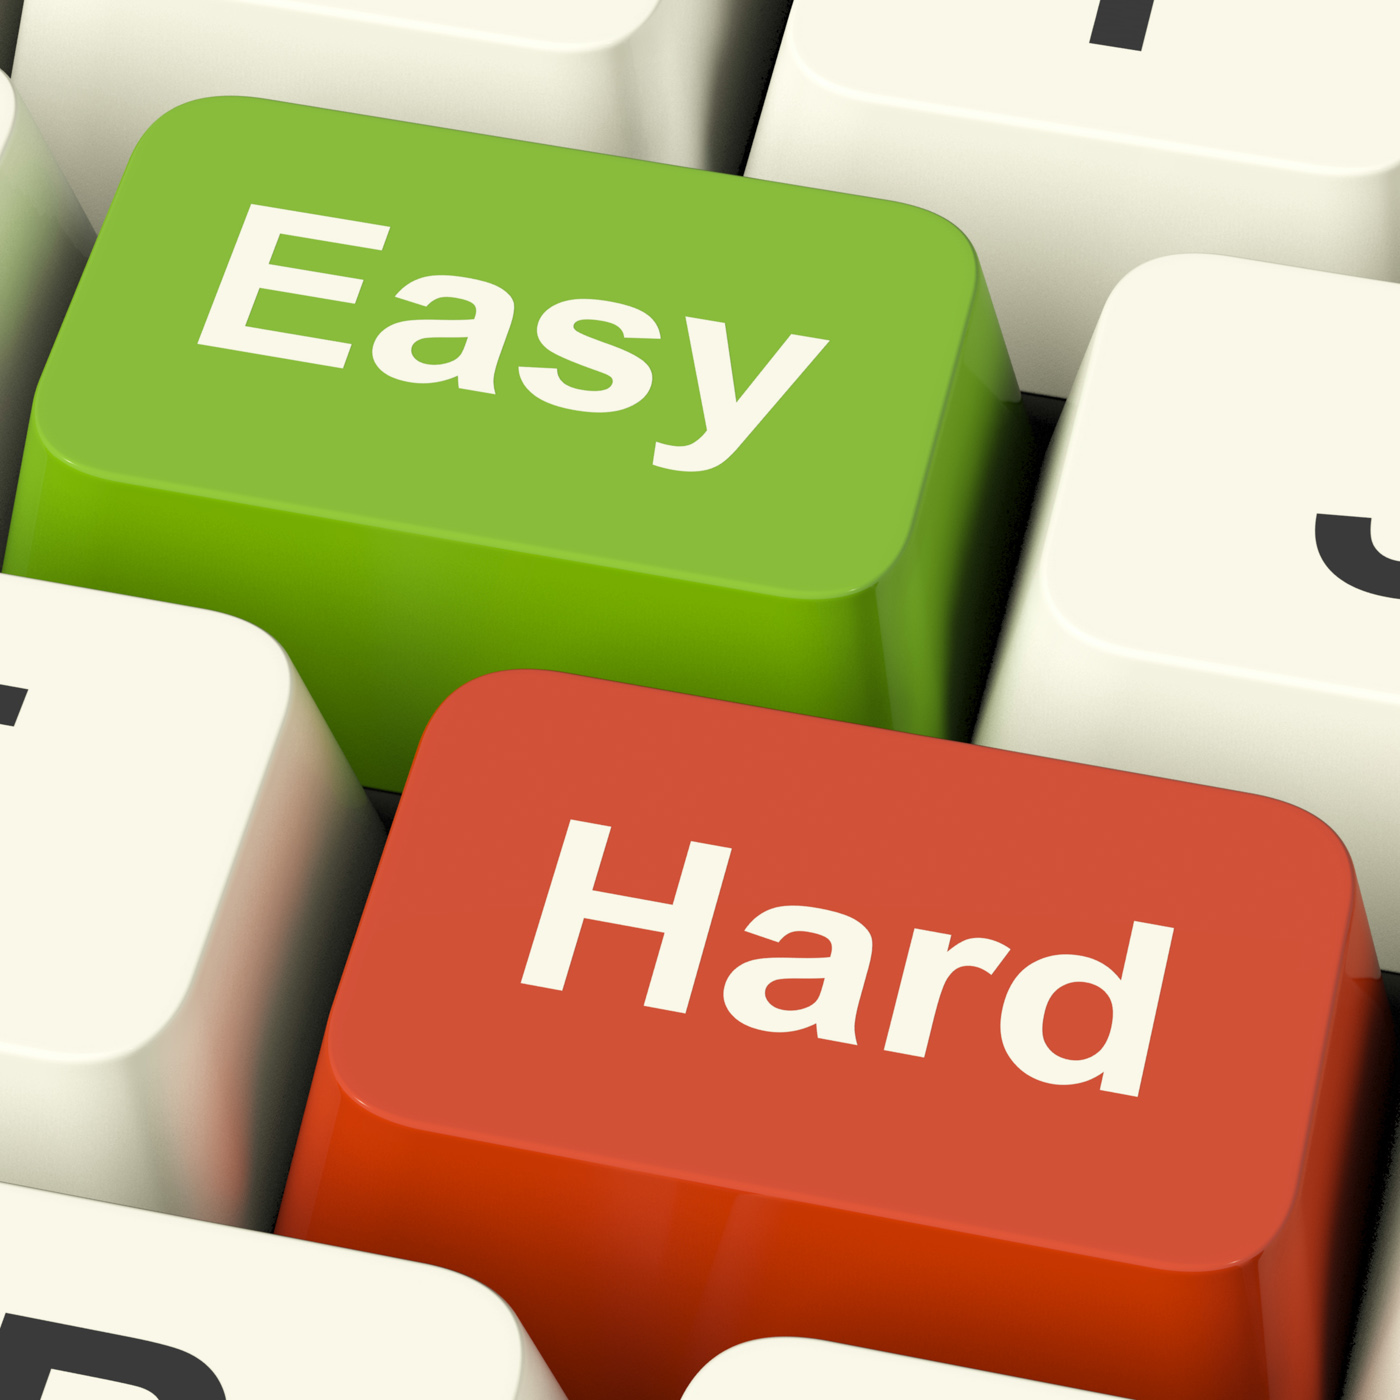 Hard easy computer keys showing the choice of difficult or simple way photo